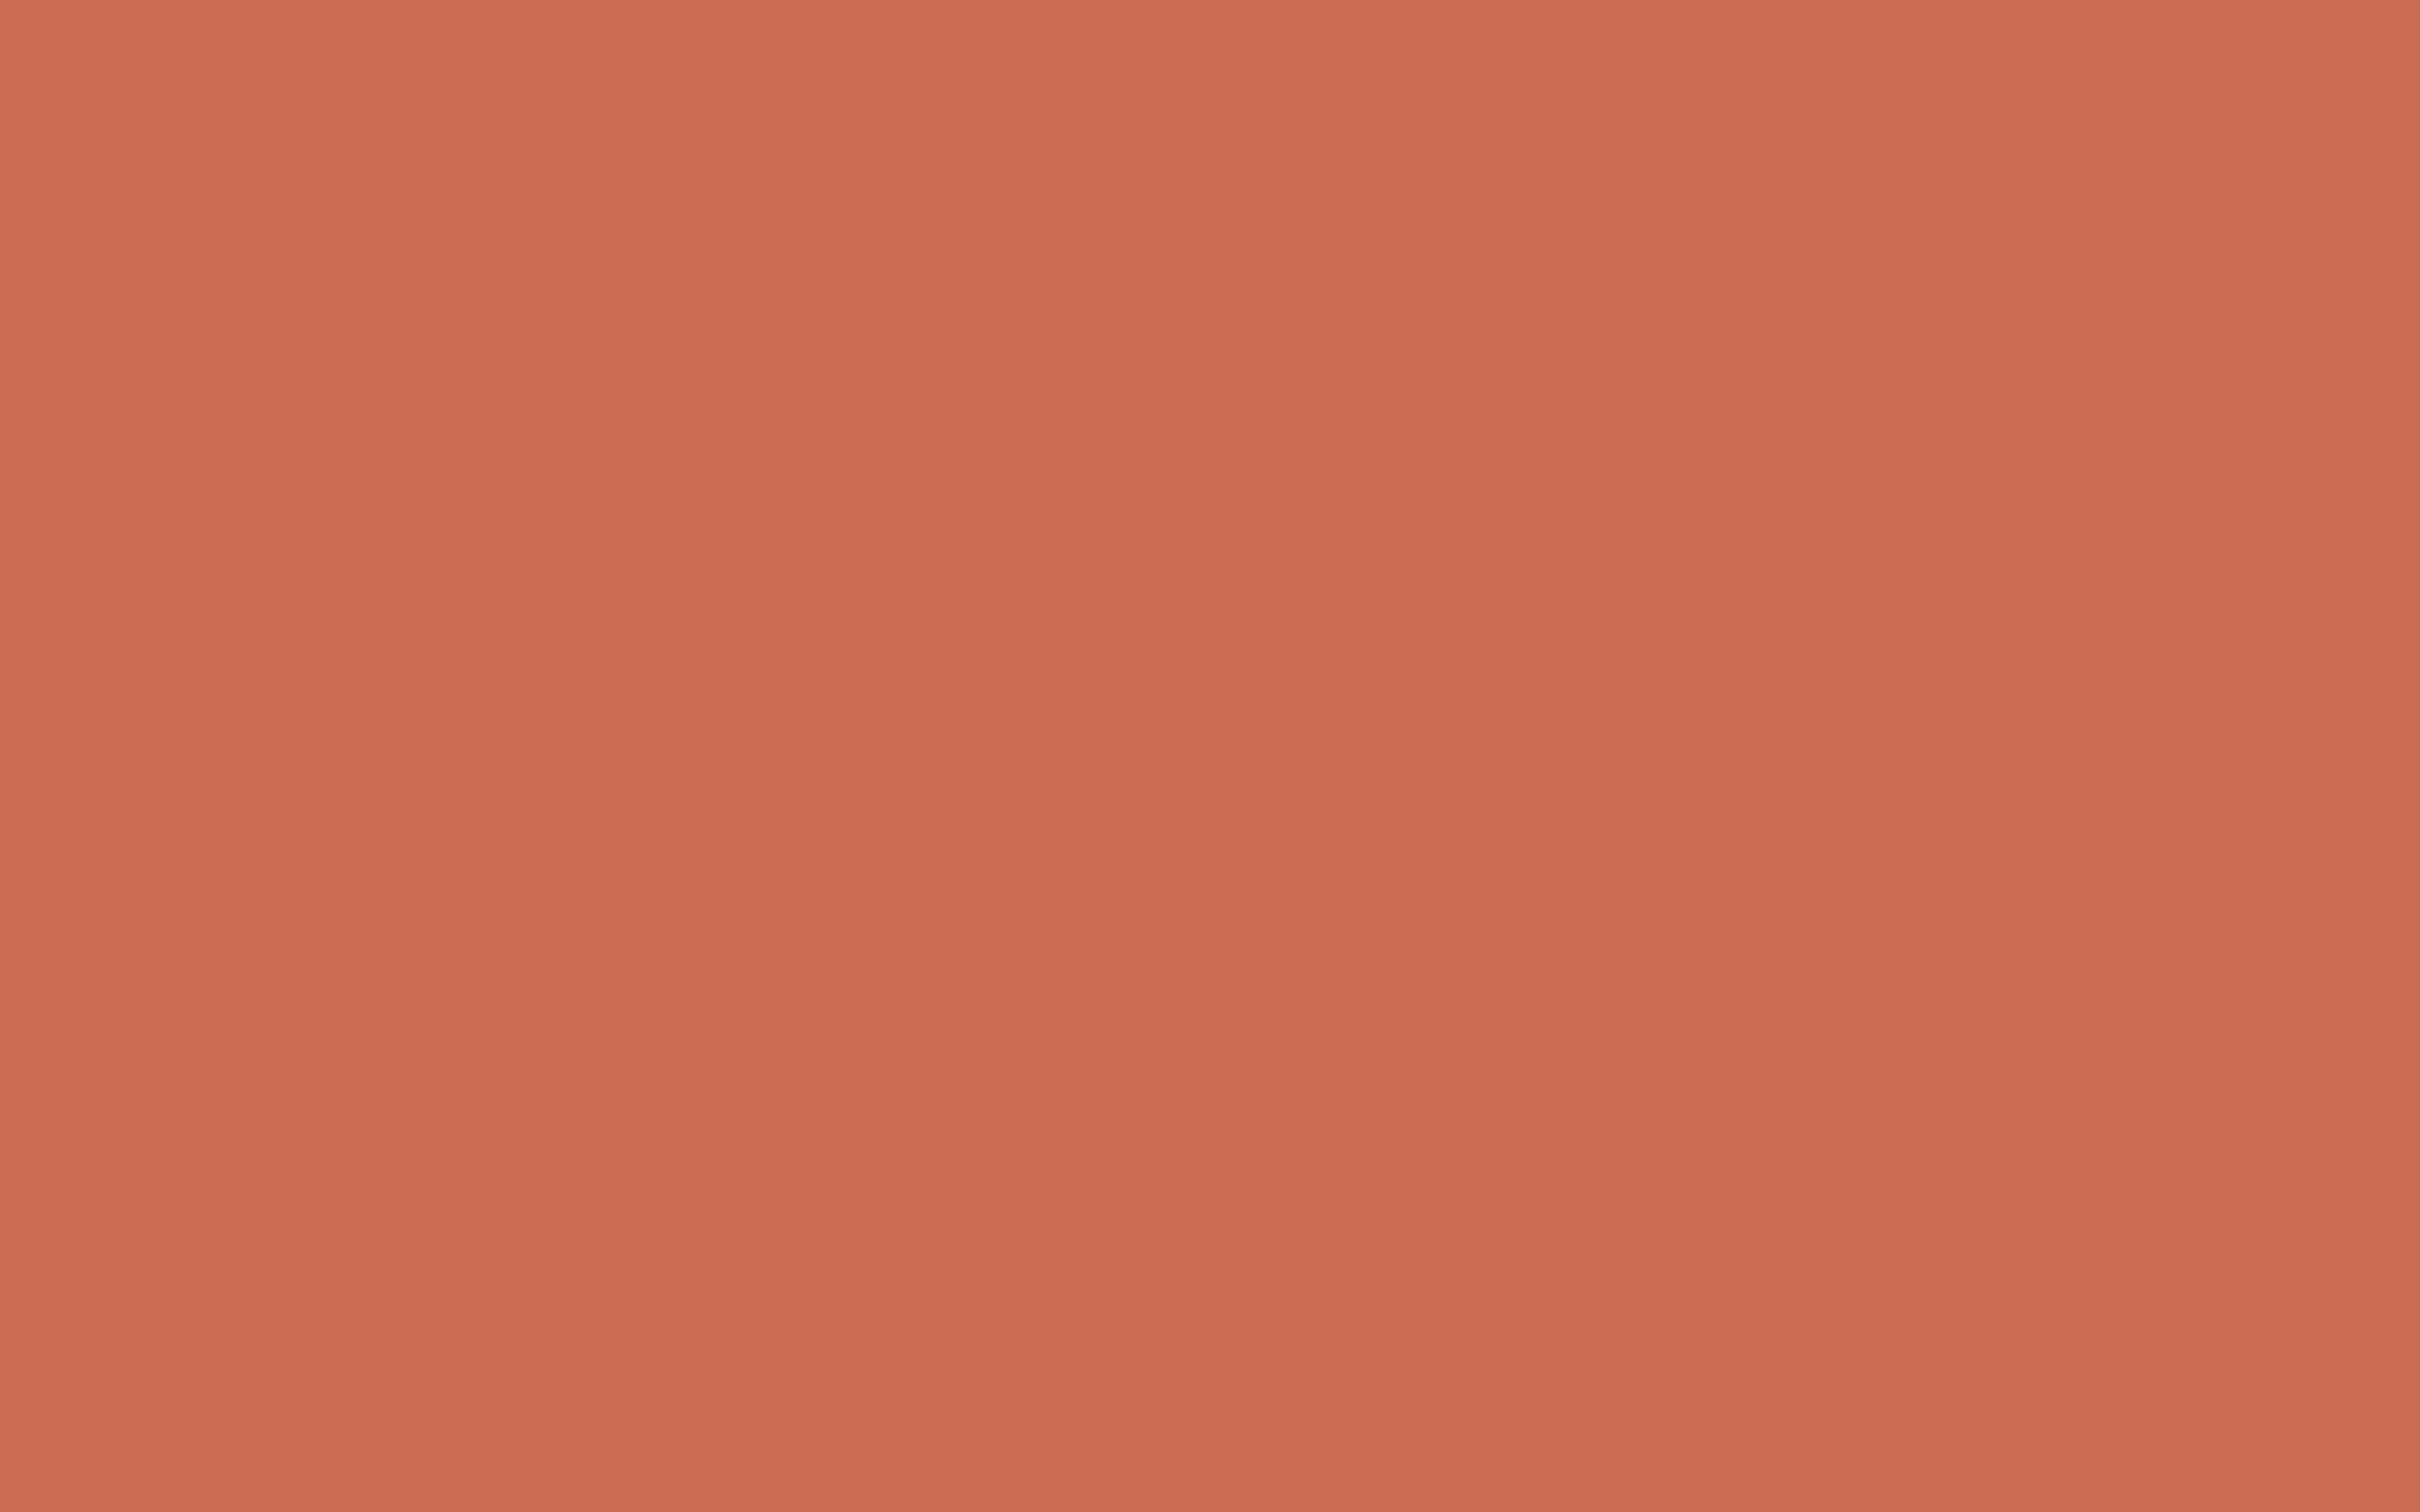 2880x1800 Copper Red Solid Color Background